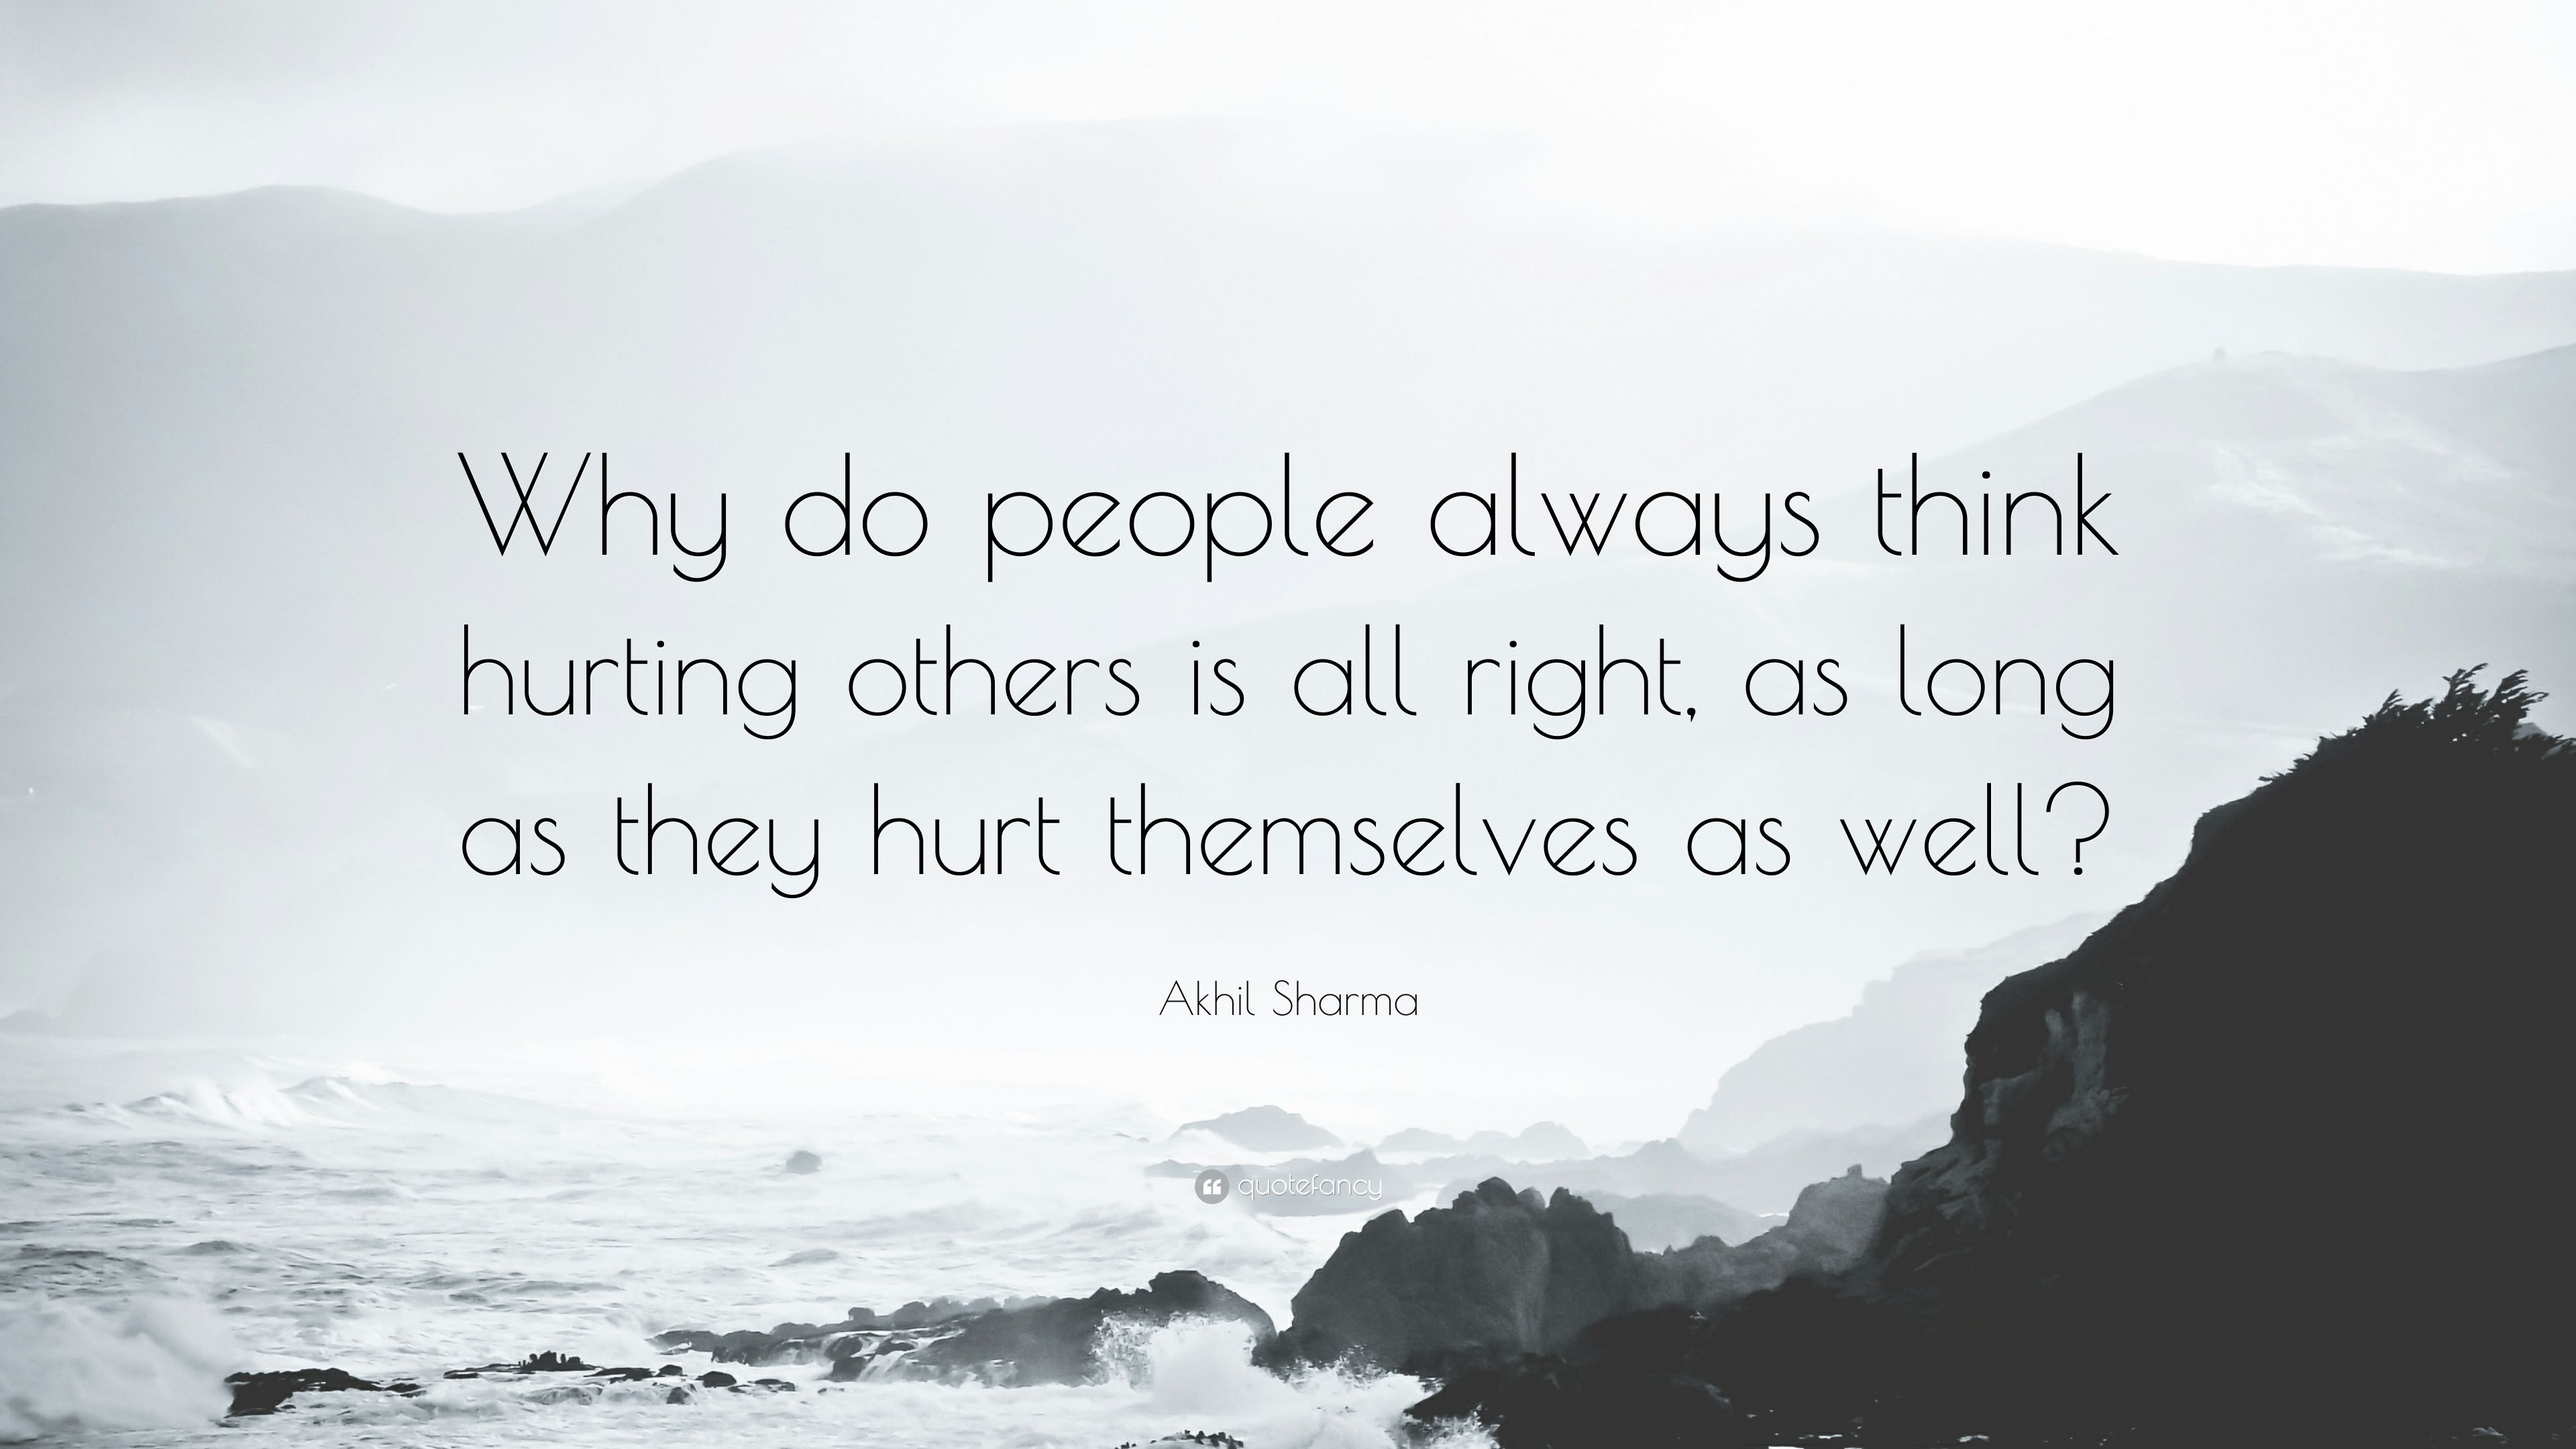 Akhil Sharma Quote: Why do people always think hurting others is all right, as long as they